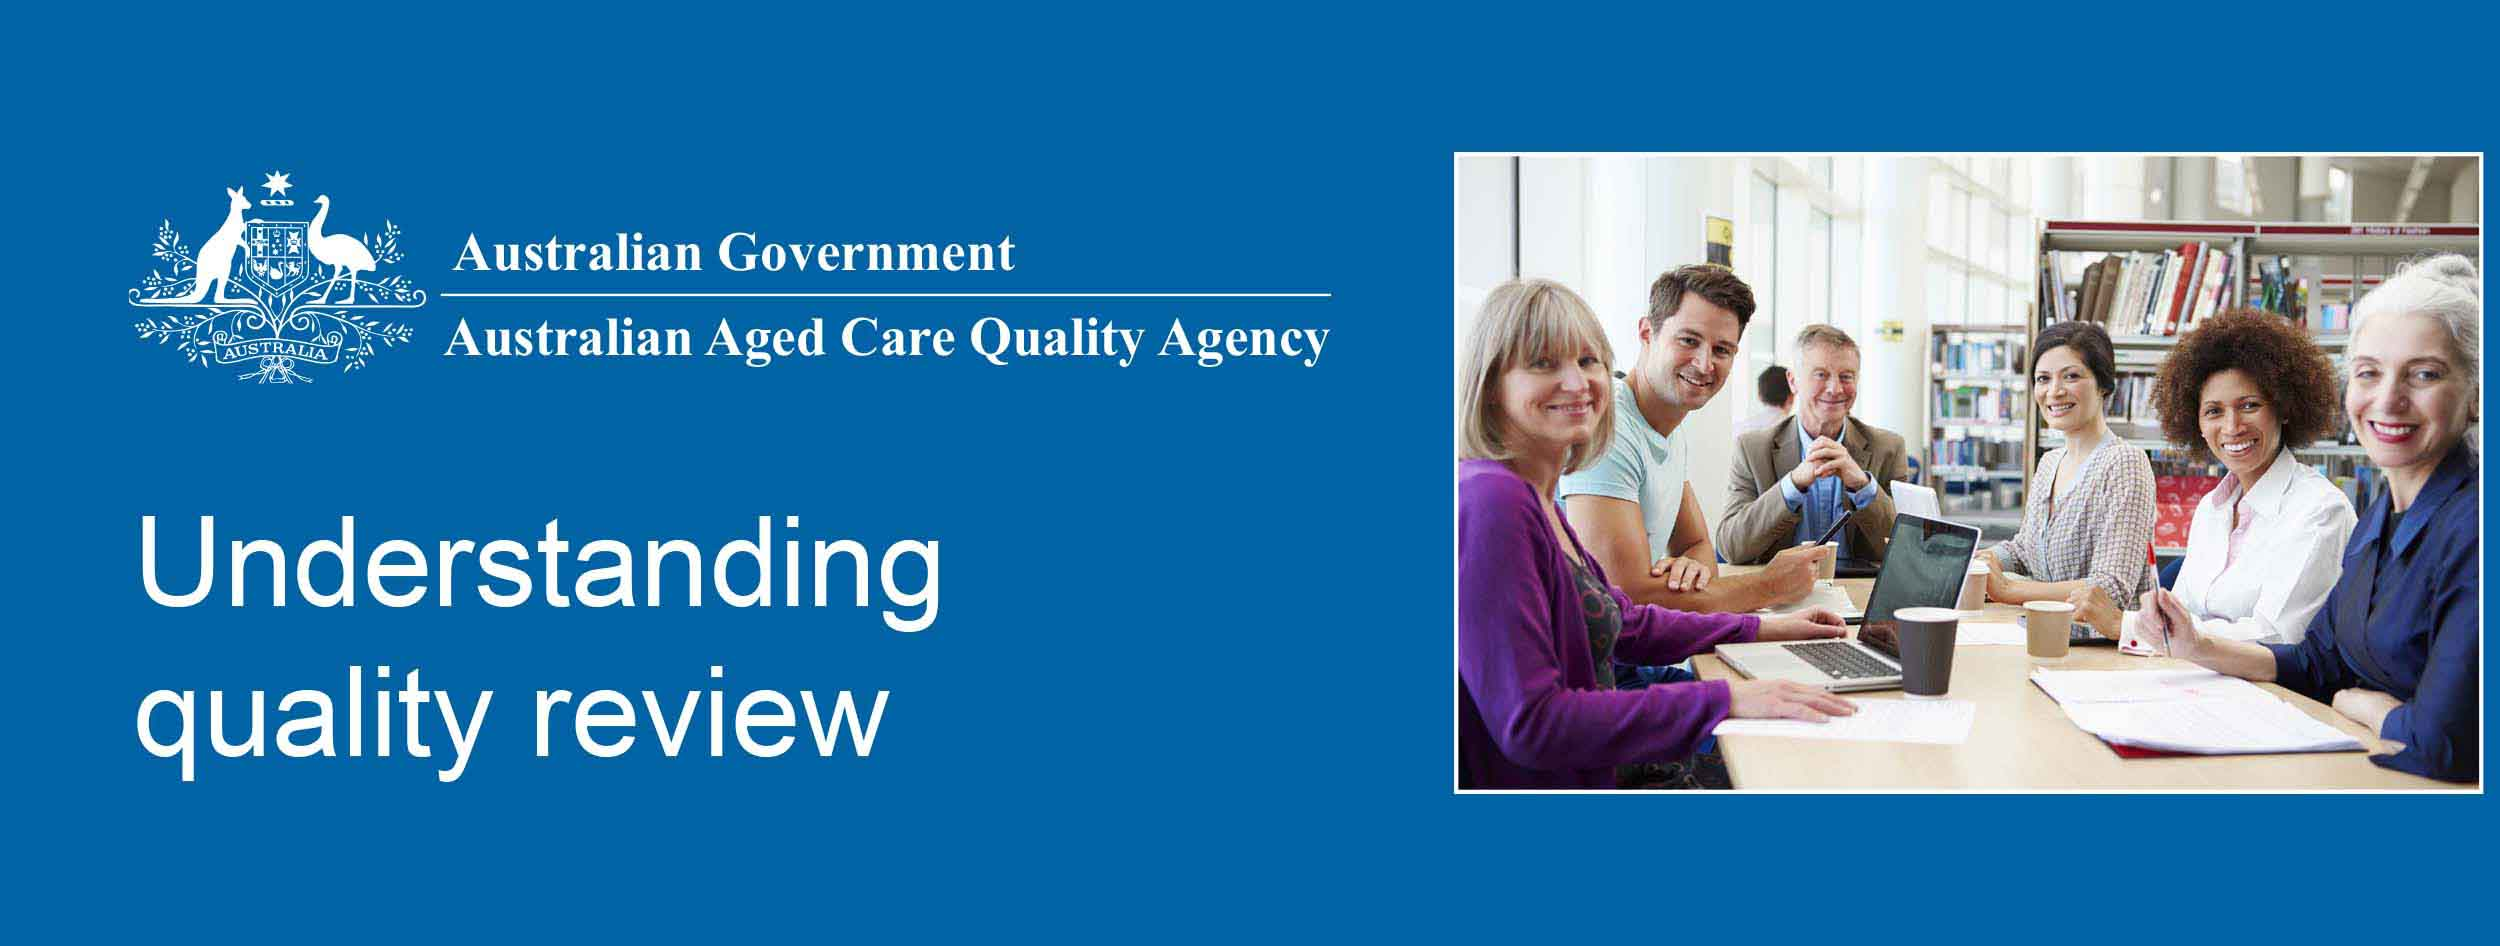 Understanding quality review - Adelaide - 15 - 16 February 2018